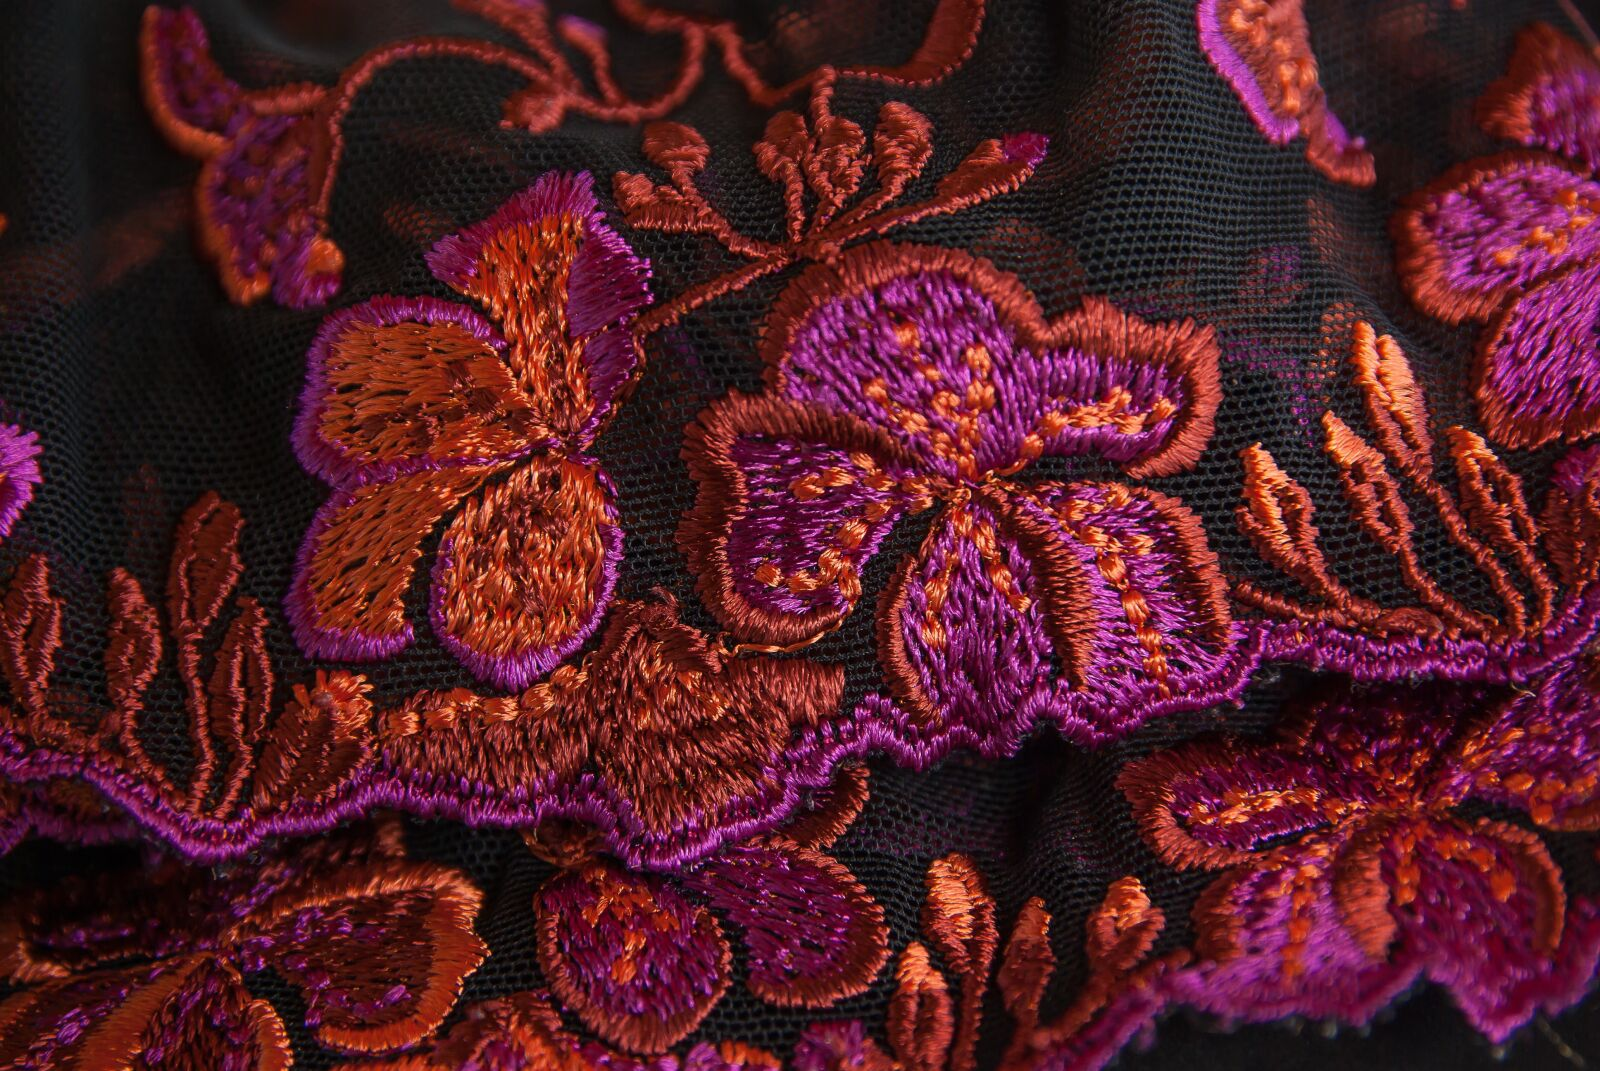 """Pentax K10D sample photo. """"Lace, embroidery, couture"""" photography"""